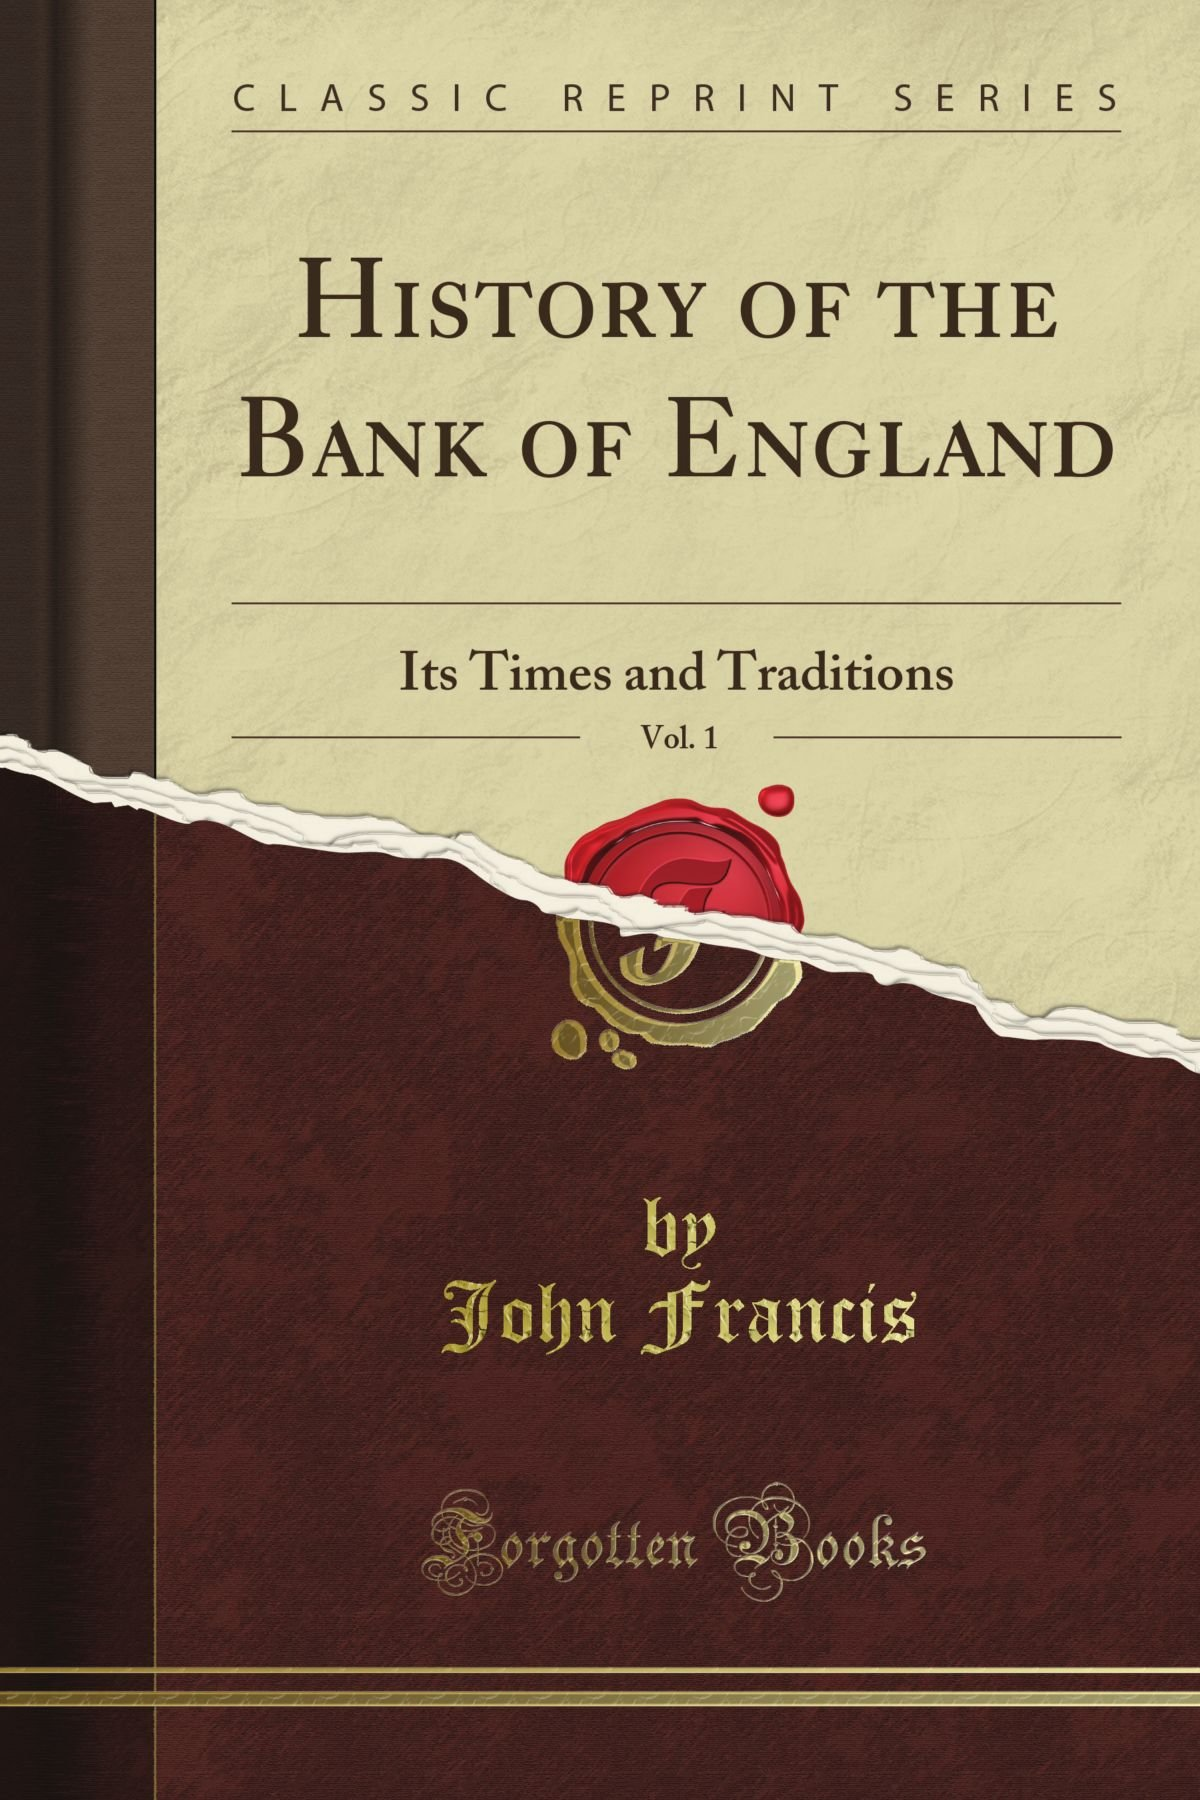 History of the Bank of England: Its Times and Traditions, Vol. 1 (Classic Reprint) pdf epub